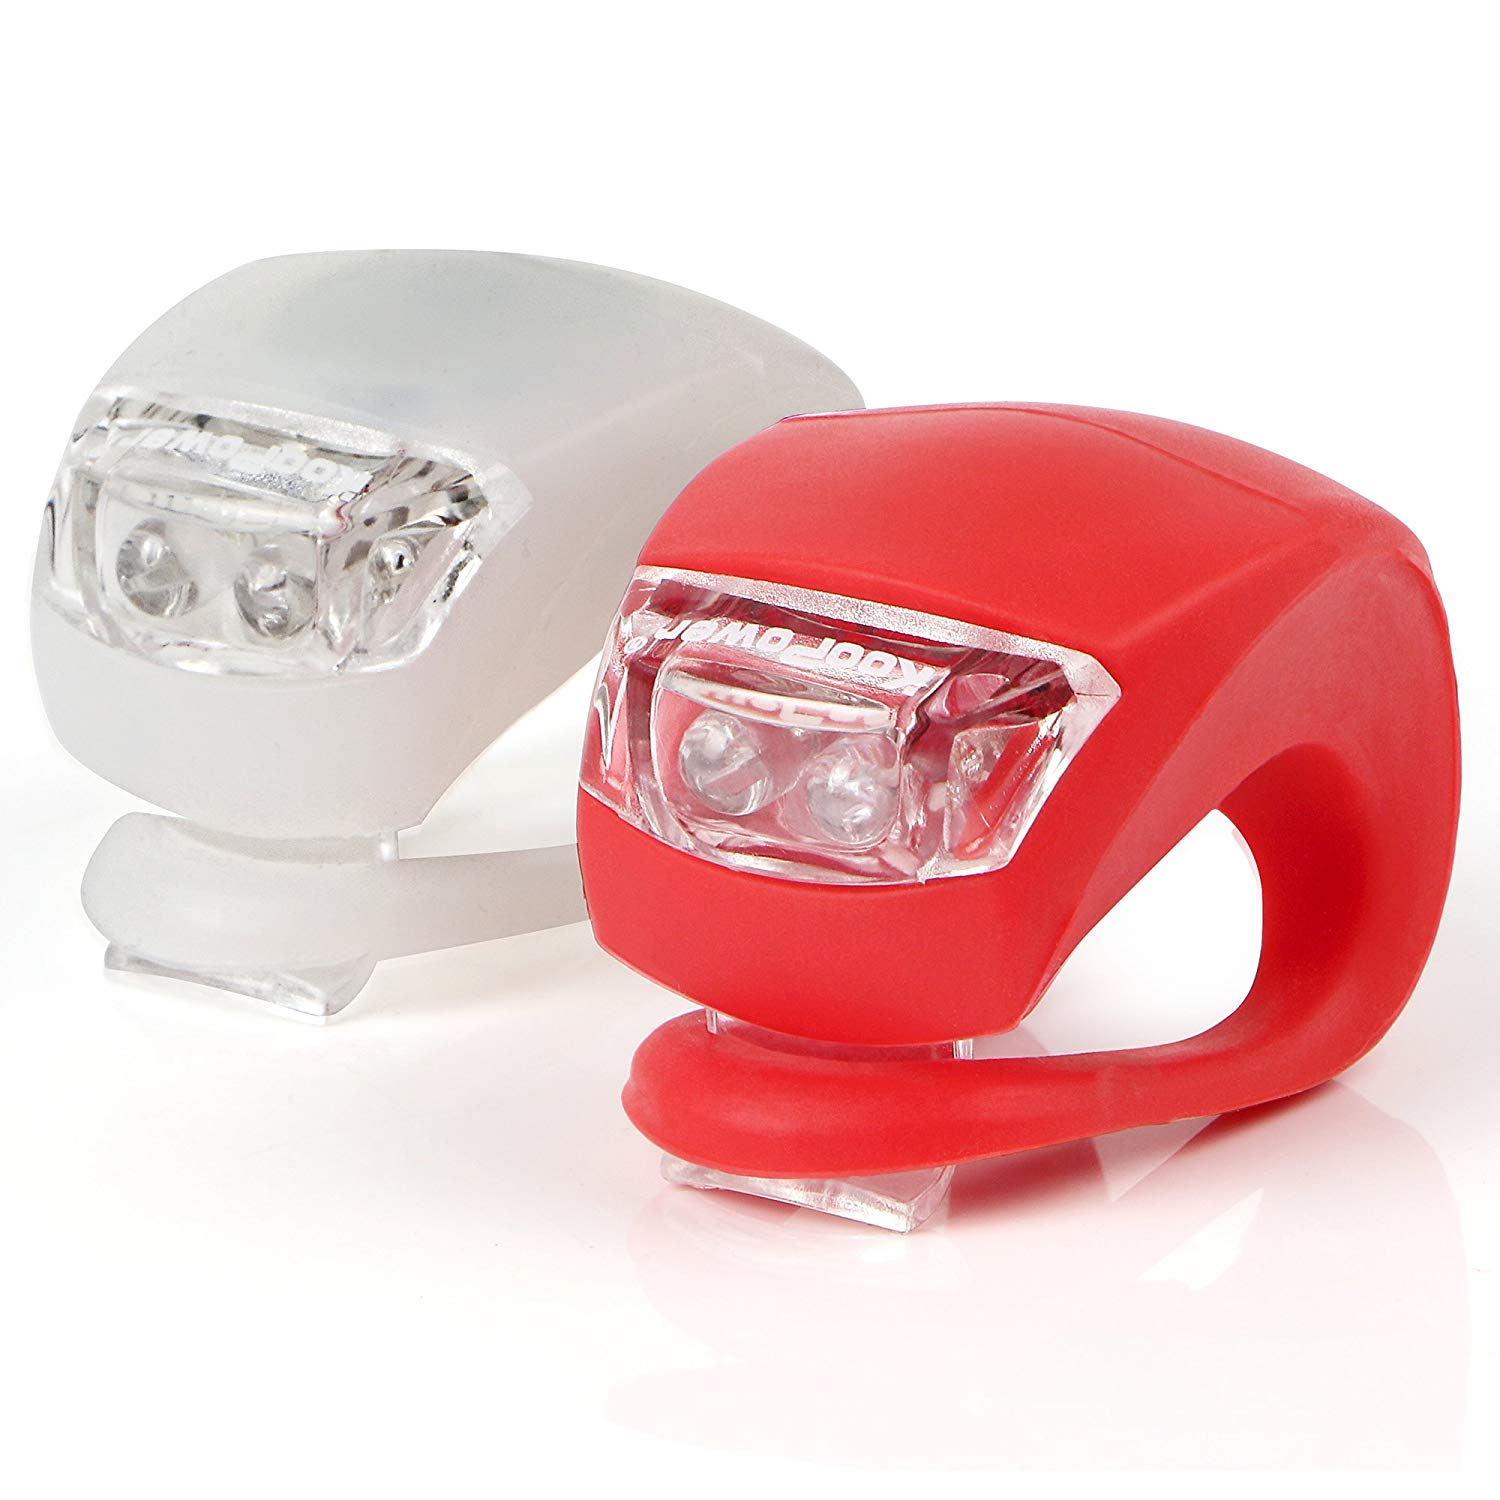 Bike Lights Set, 2 Pack, White & Red